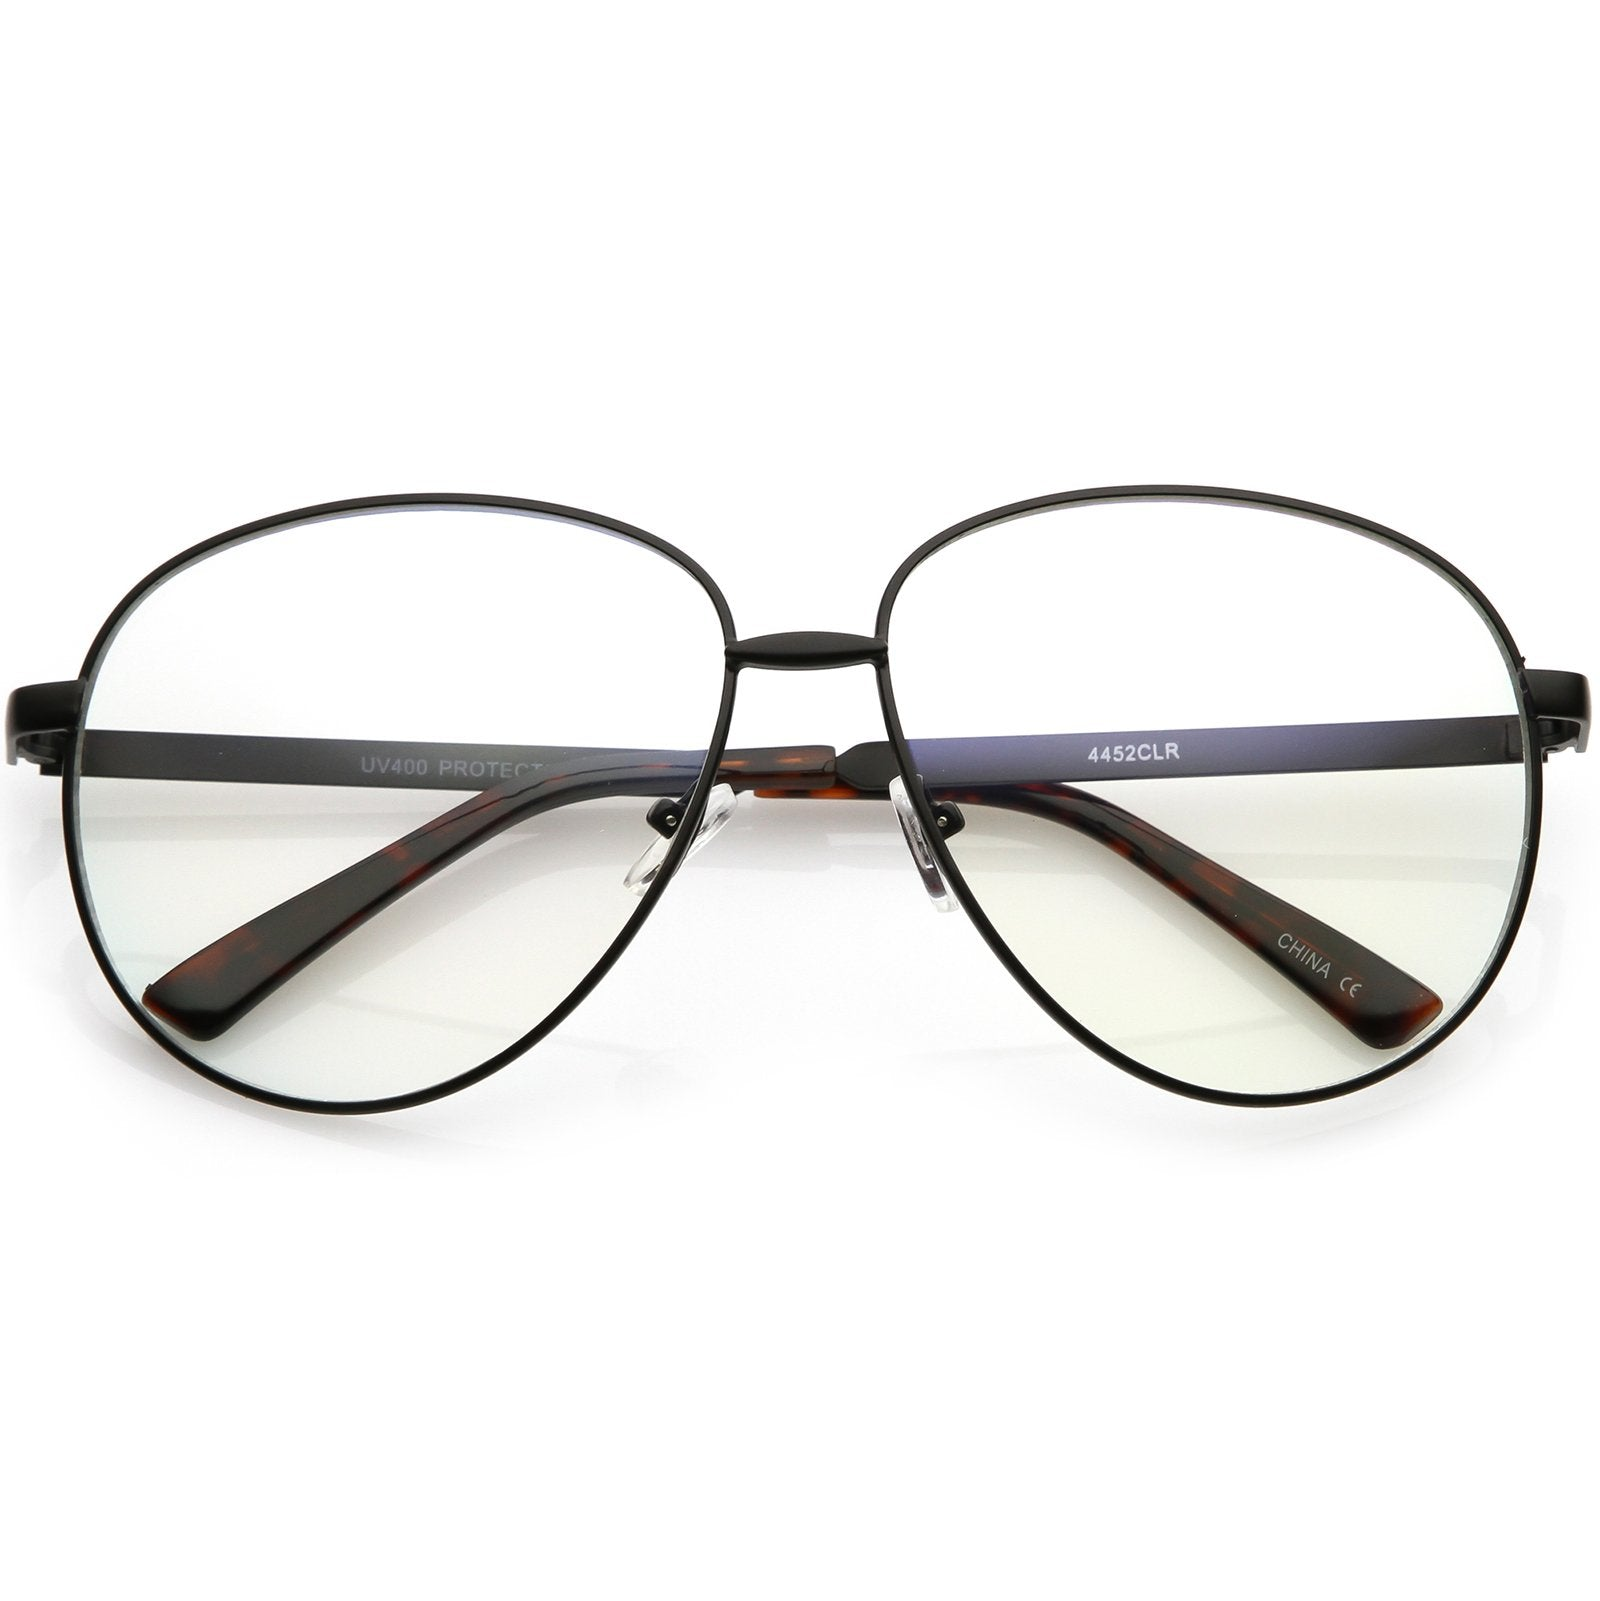 65d4efc8bd Oversize Women s Round Indie Clear Lens Glasses C215